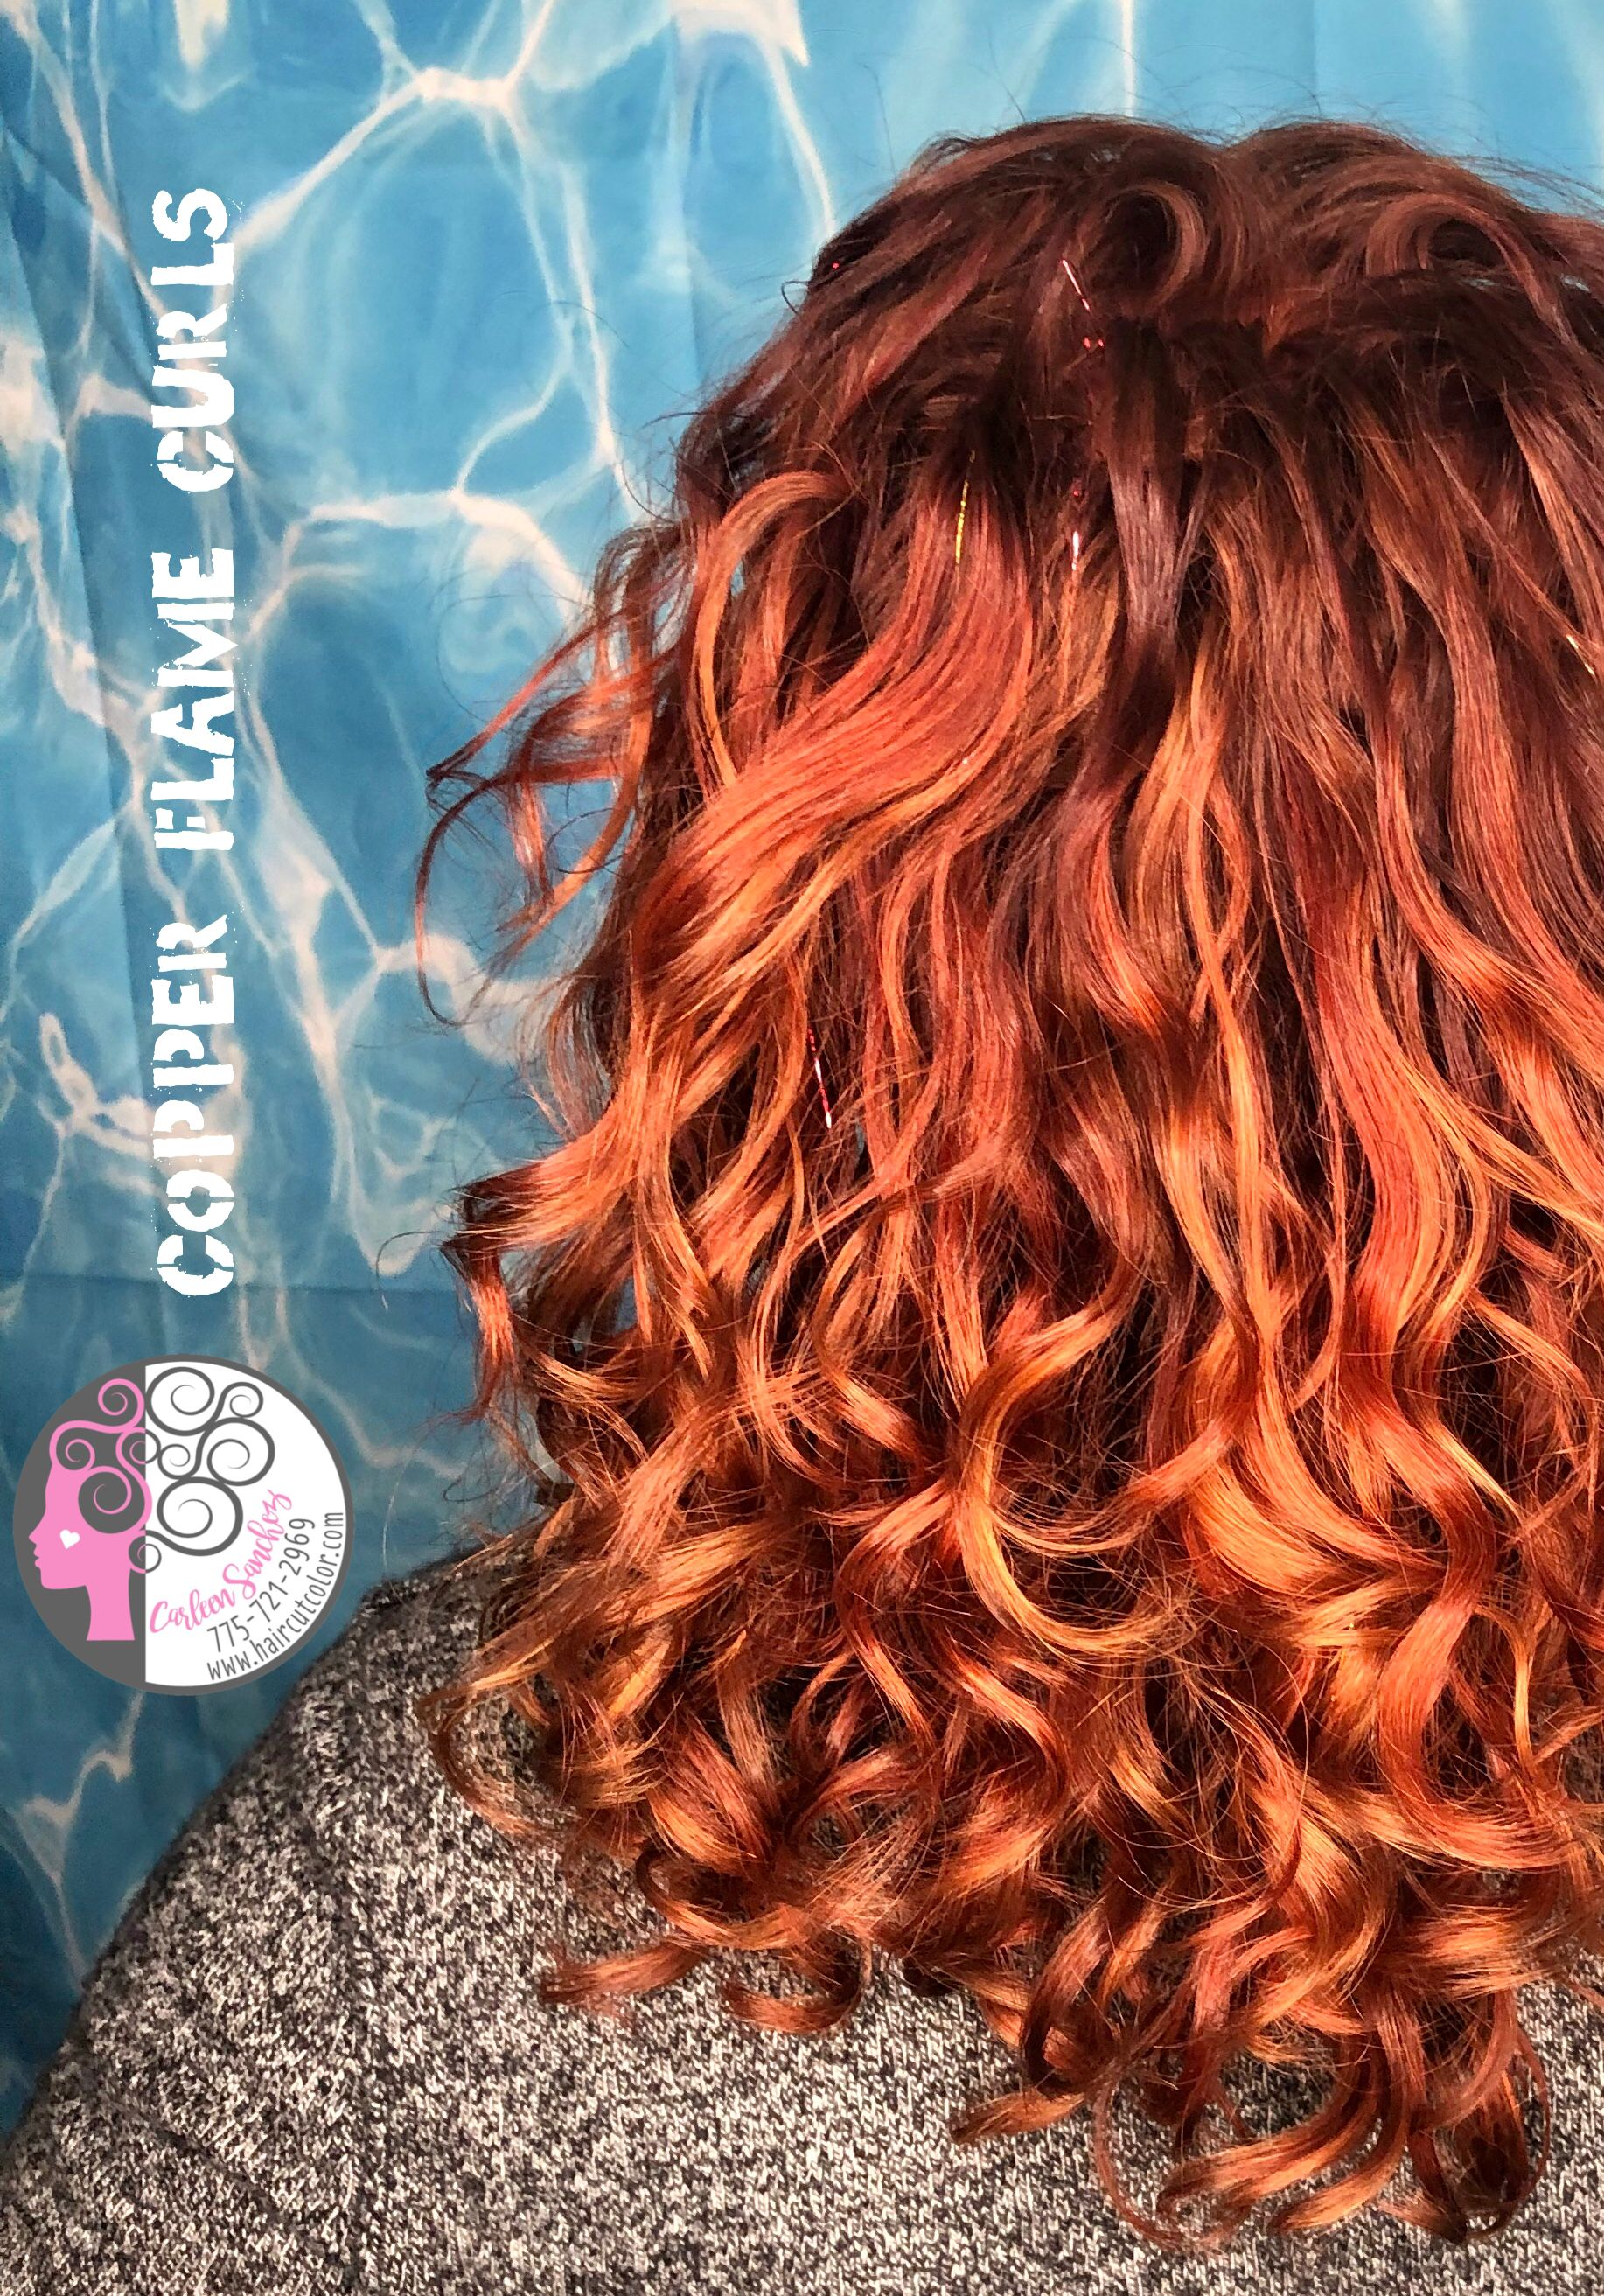 Copper Red Curly Hair Red Curly Hair Curly Hair Styles Haircuts For Curly Hair